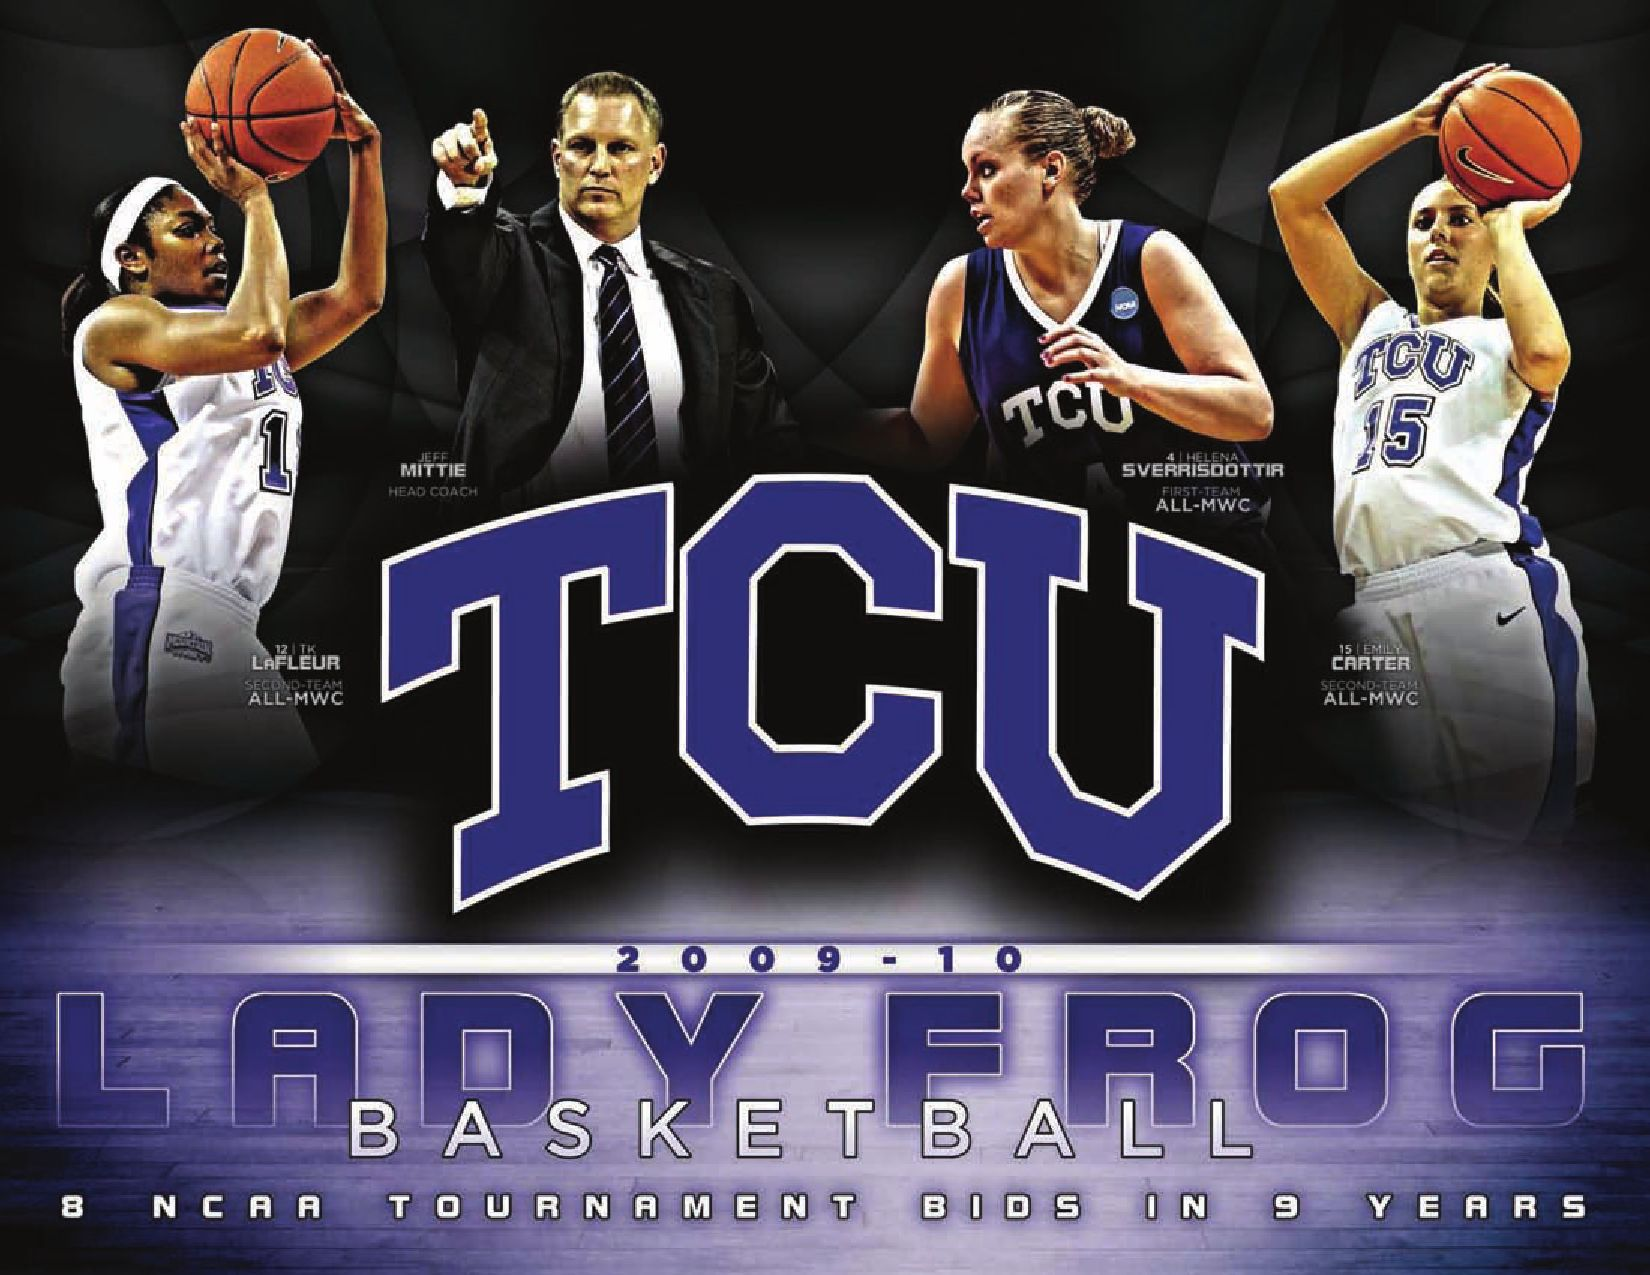 b4349dd7b0cd 2009-10 TCU Women s Basketball Media Guide by TCU Athletics - issuu